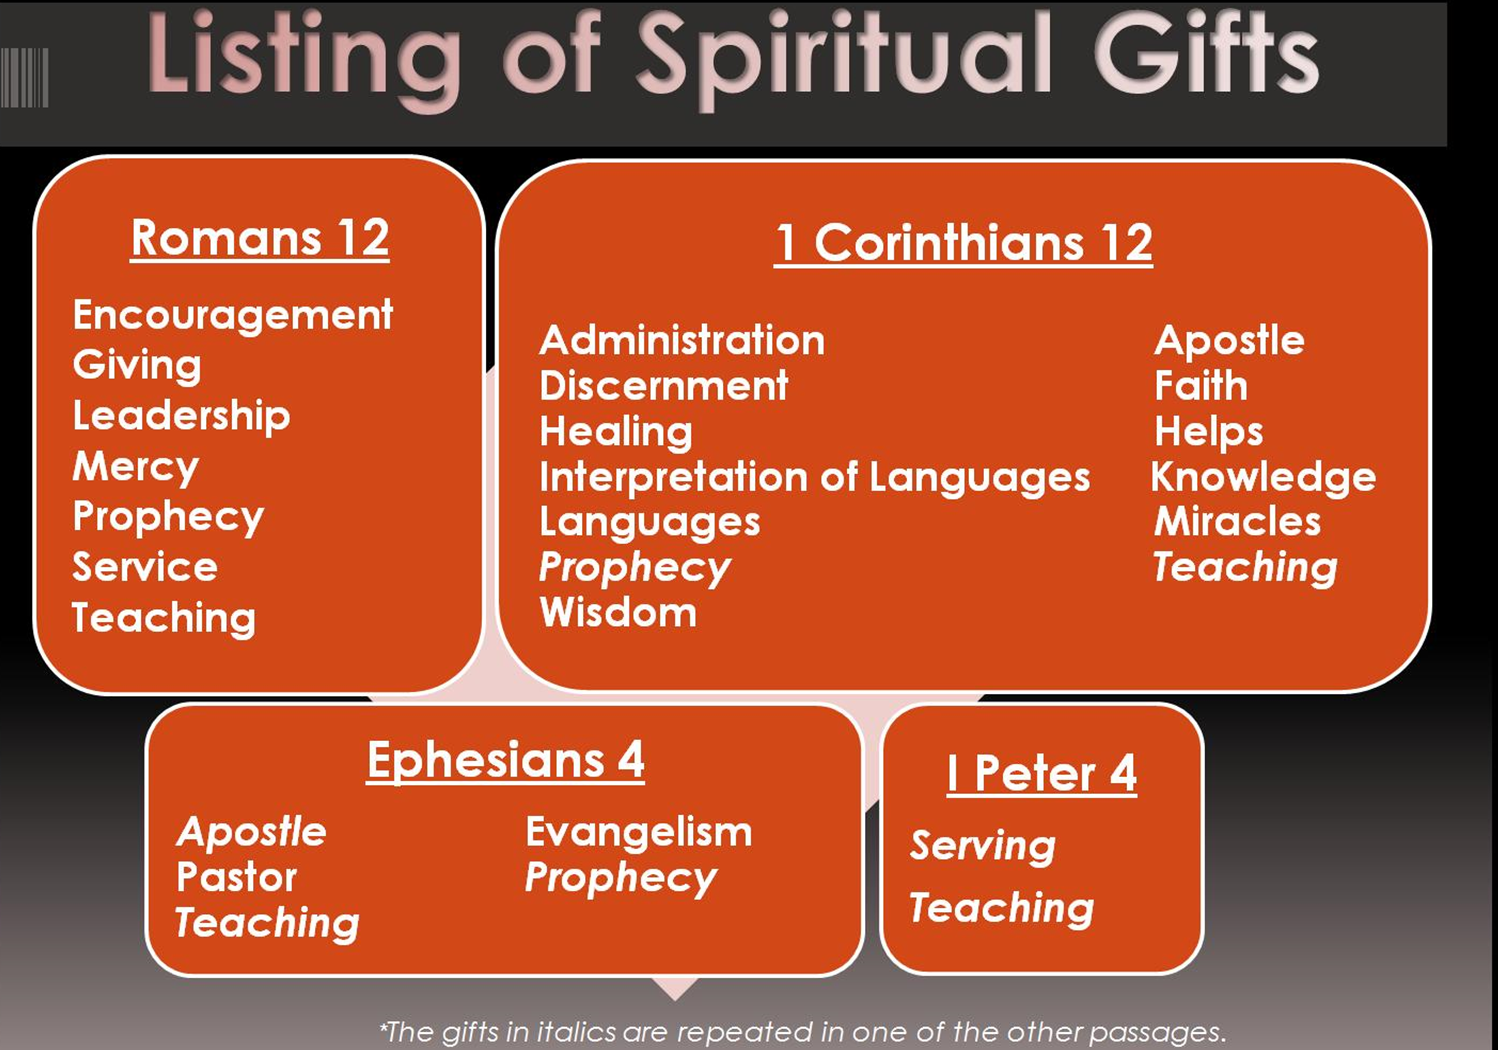 Biblical References to Spiritual Gifts